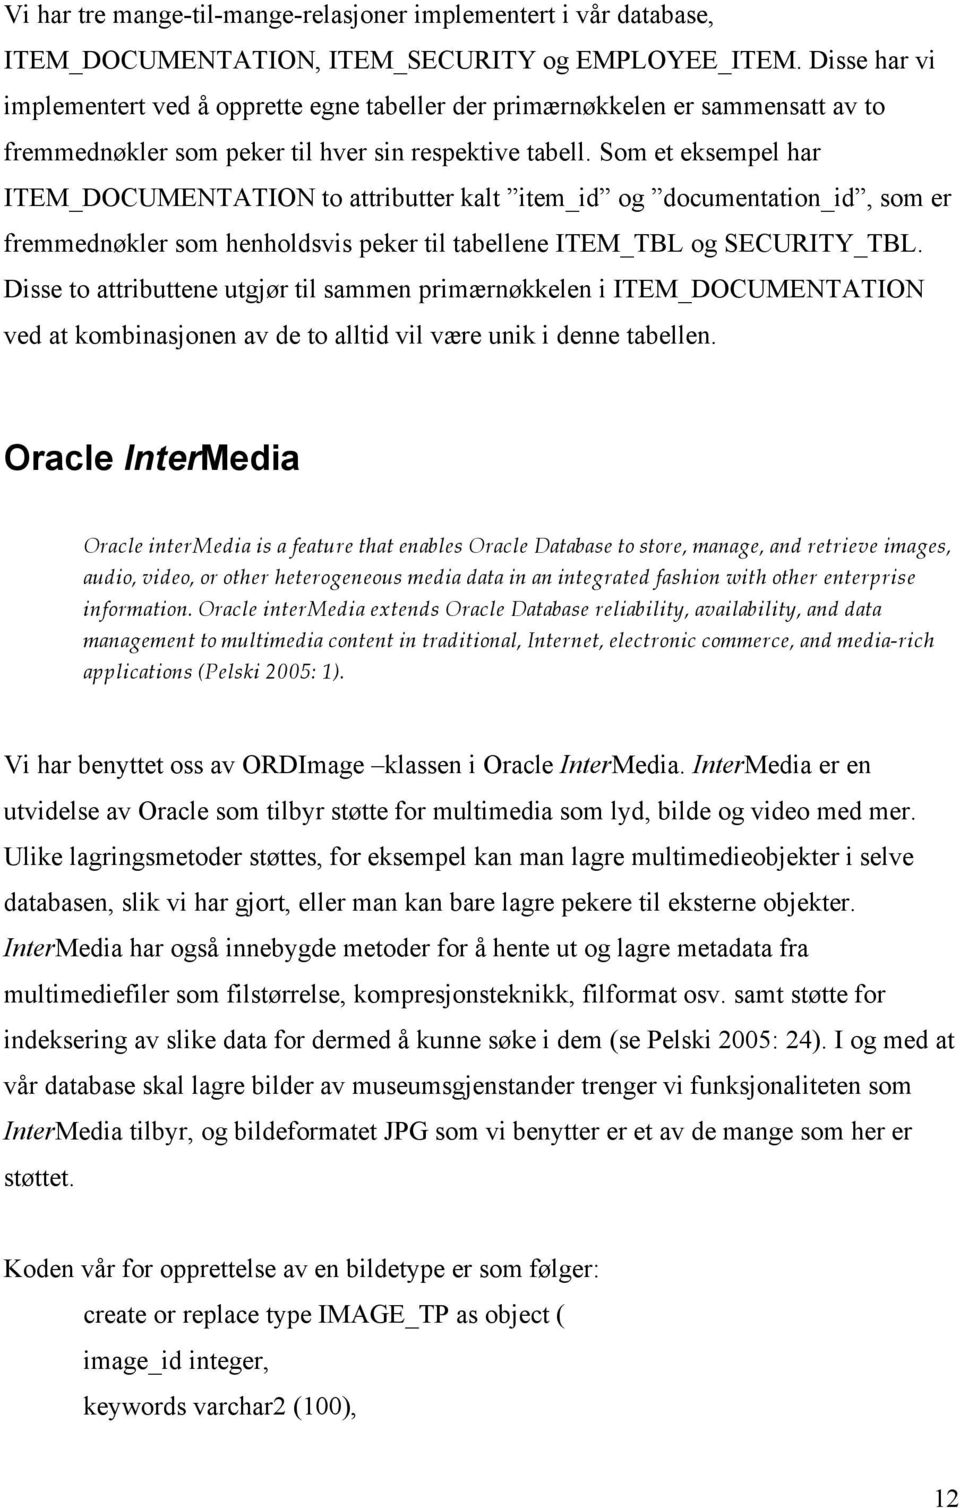 Som et eksempel har ITEM_DOCUMENTATION to attributter kalt item_id og documentation_id, som er fremmednøkler som henholdsvis peker til tabellene ITEM_TBL og SECURITY_TBL.